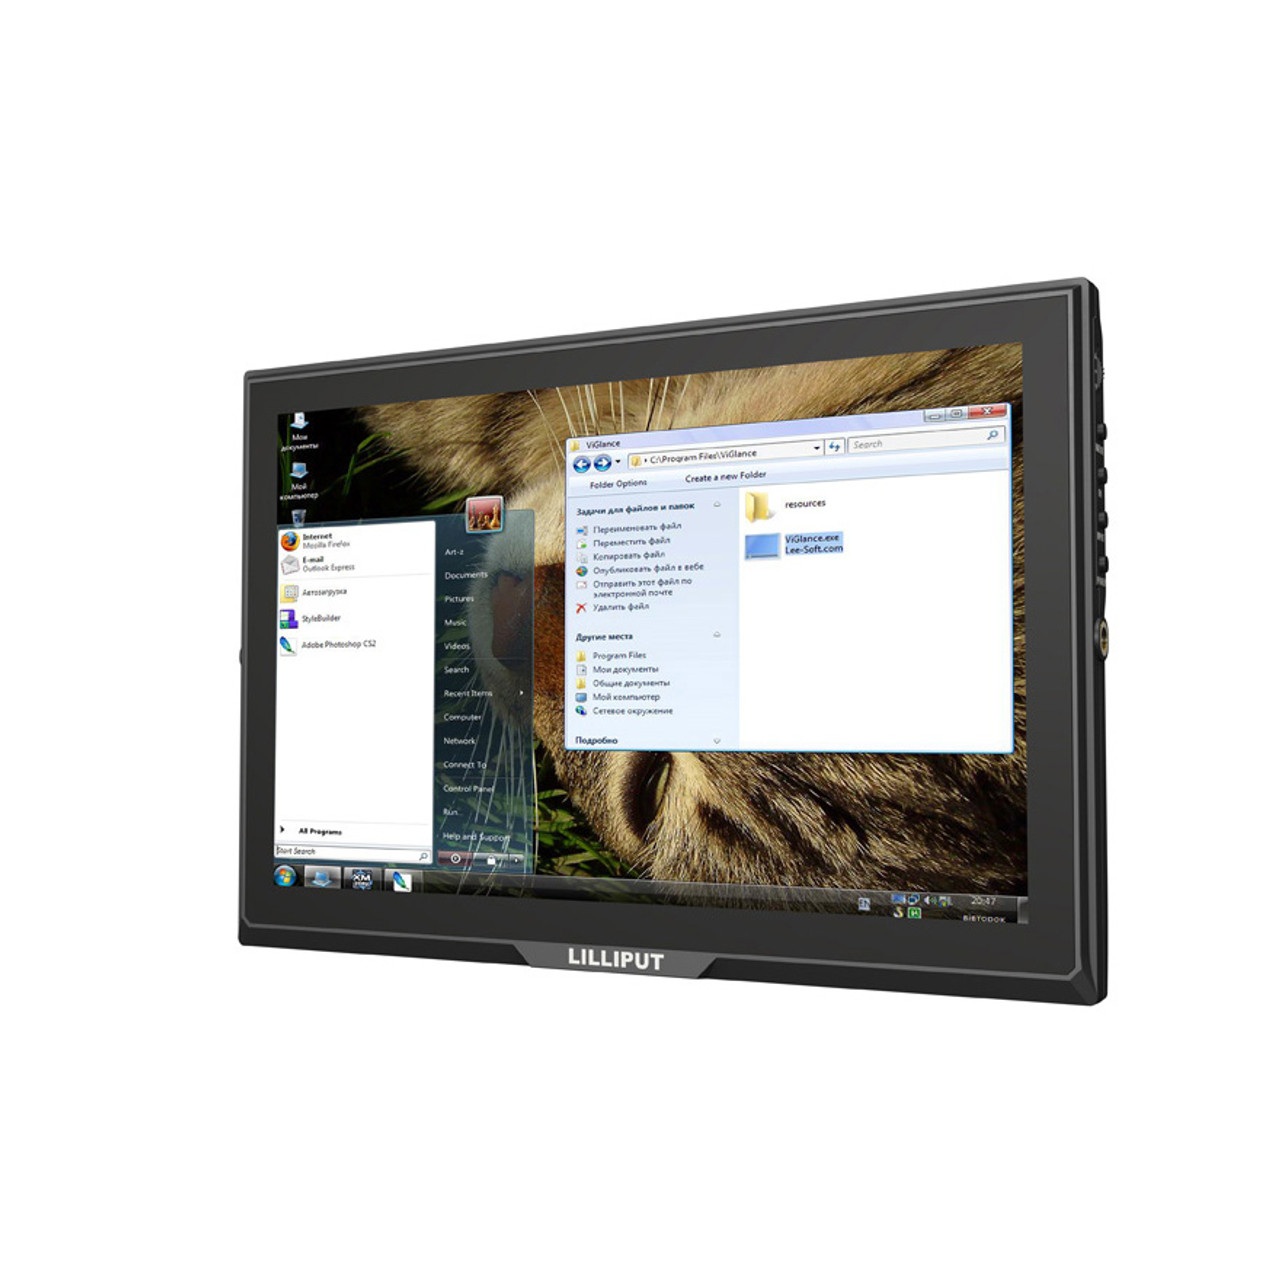 FA1014-NP/C/T 10.1 inch HD capacitive touch monitor